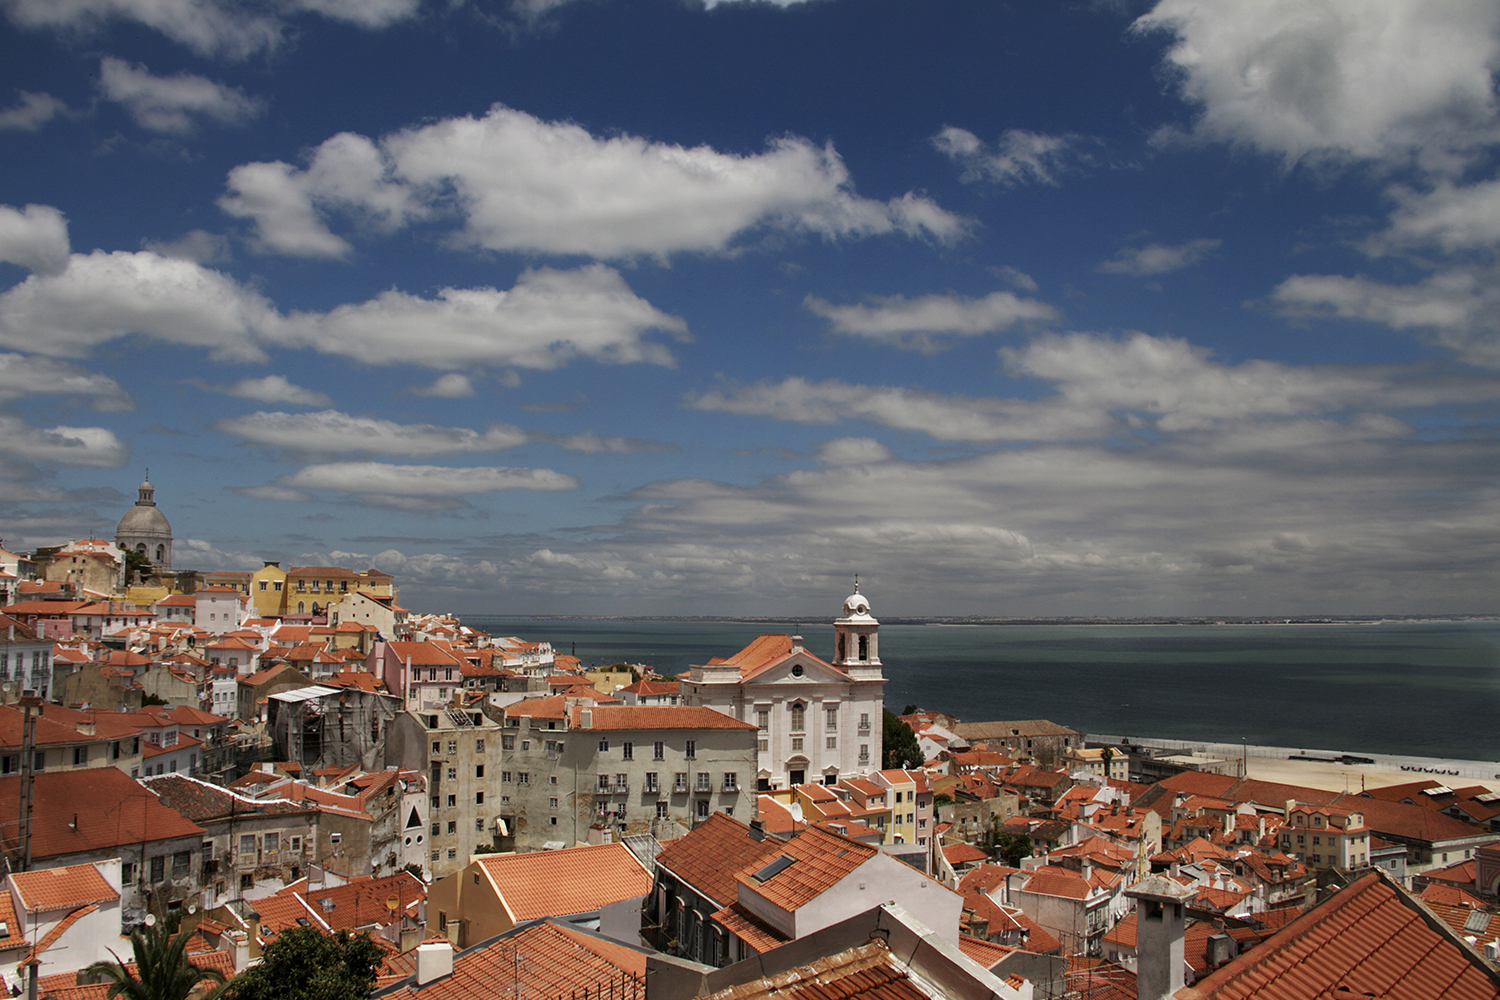 A view of Lisbon's tiled rooftops in the Alfama neighborhood.